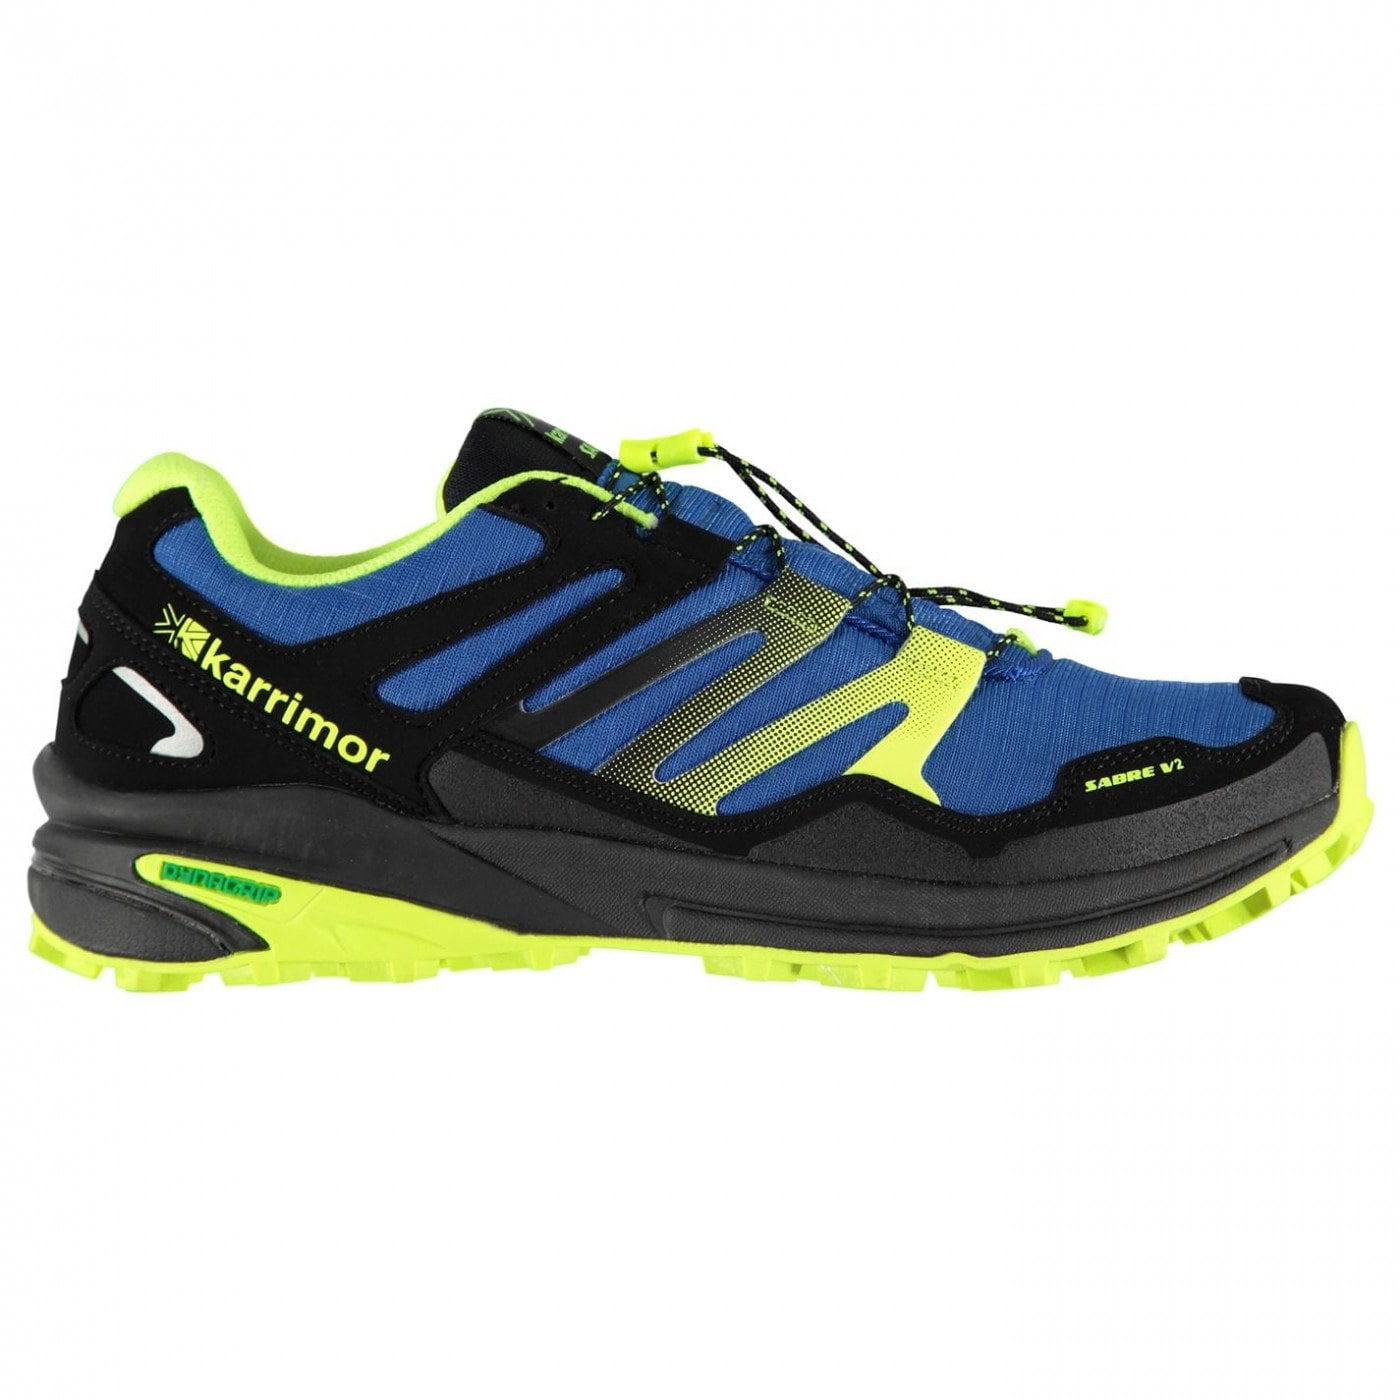 Men's running shoes Karrimor Sabre Trail